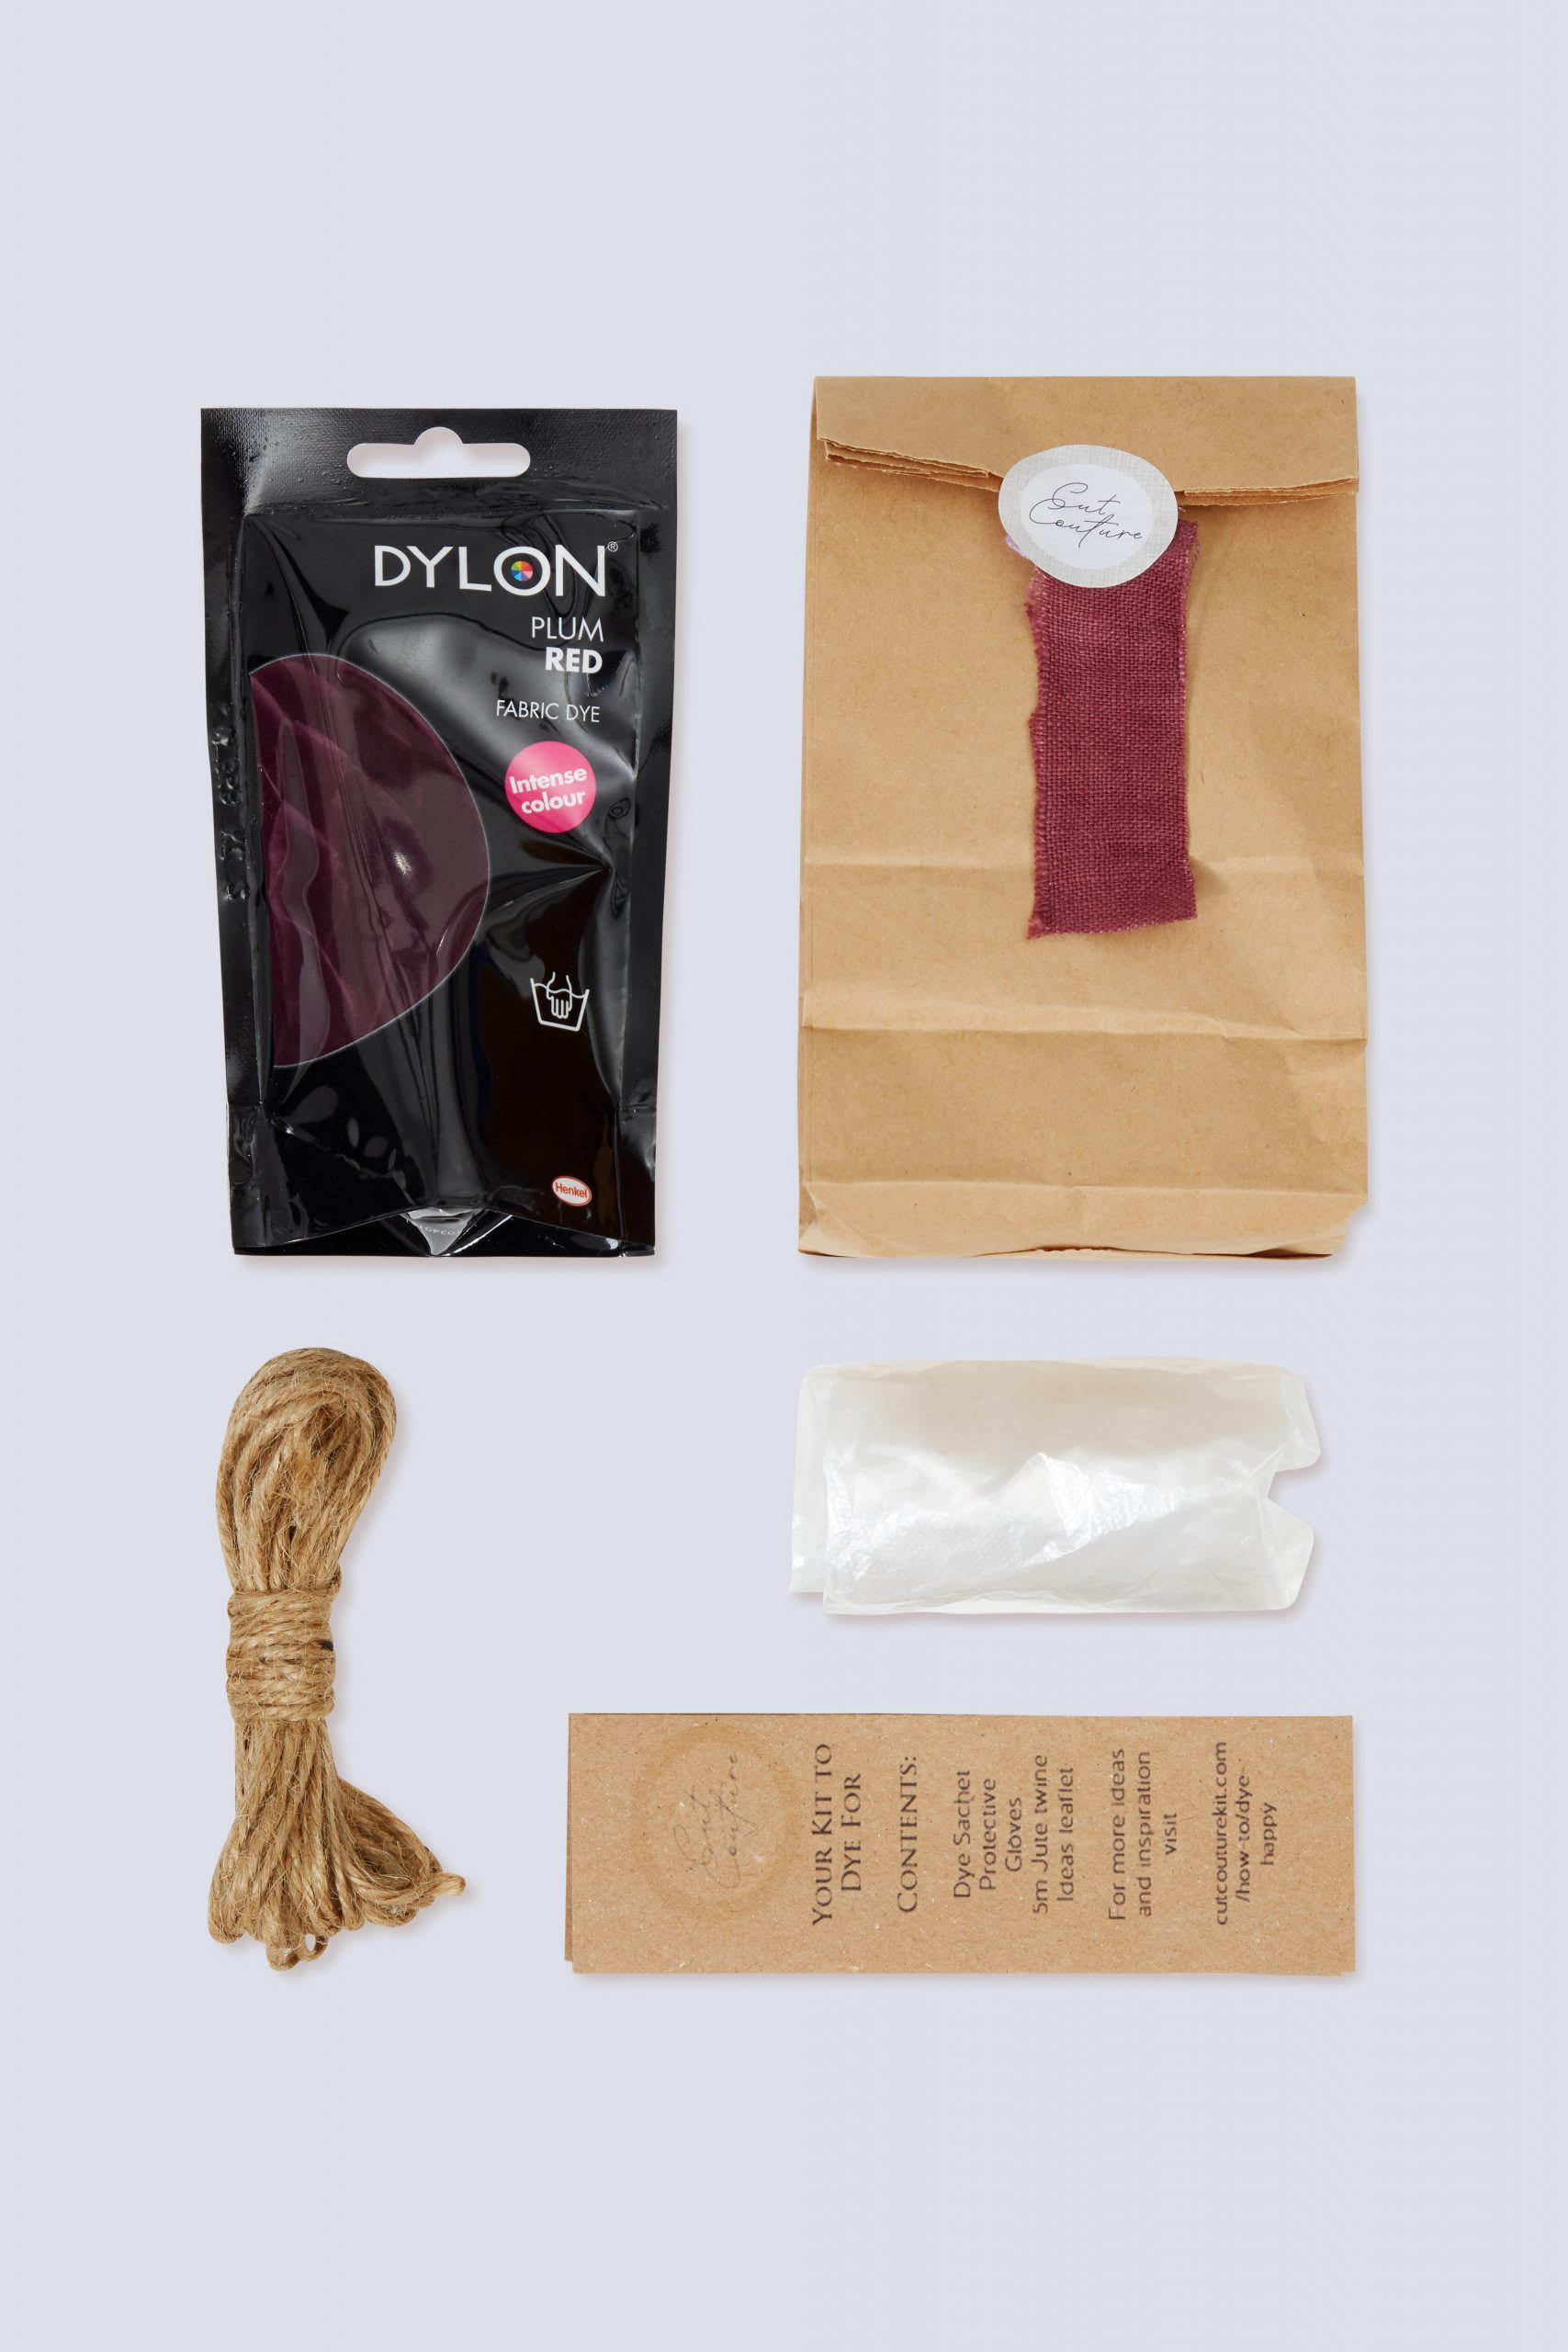 Plum Red Dylon dye jute twine gloves information leaflet with bag and colour swatch